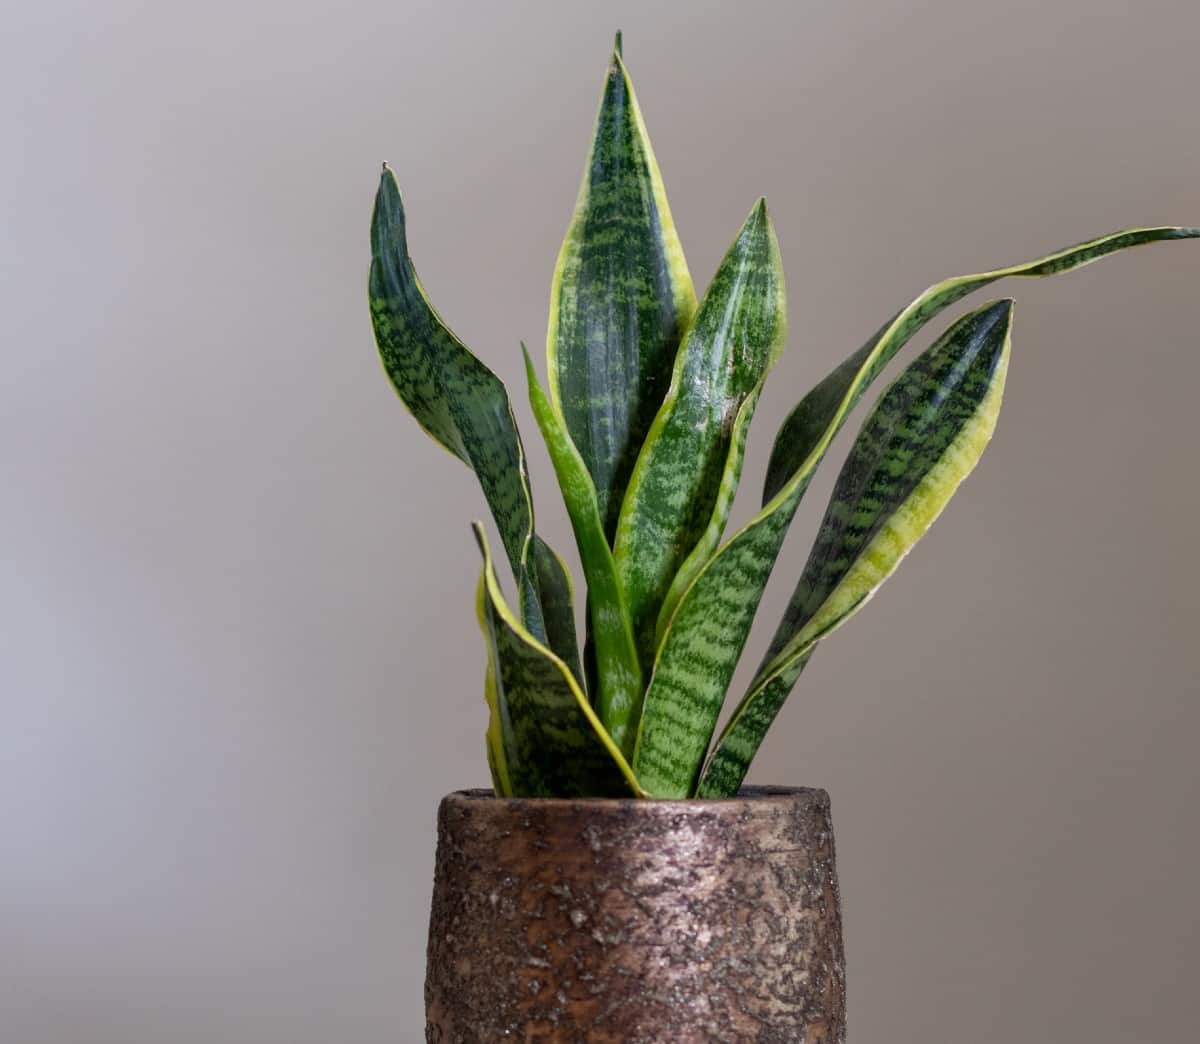 The snake plant is also known as sansevieria.